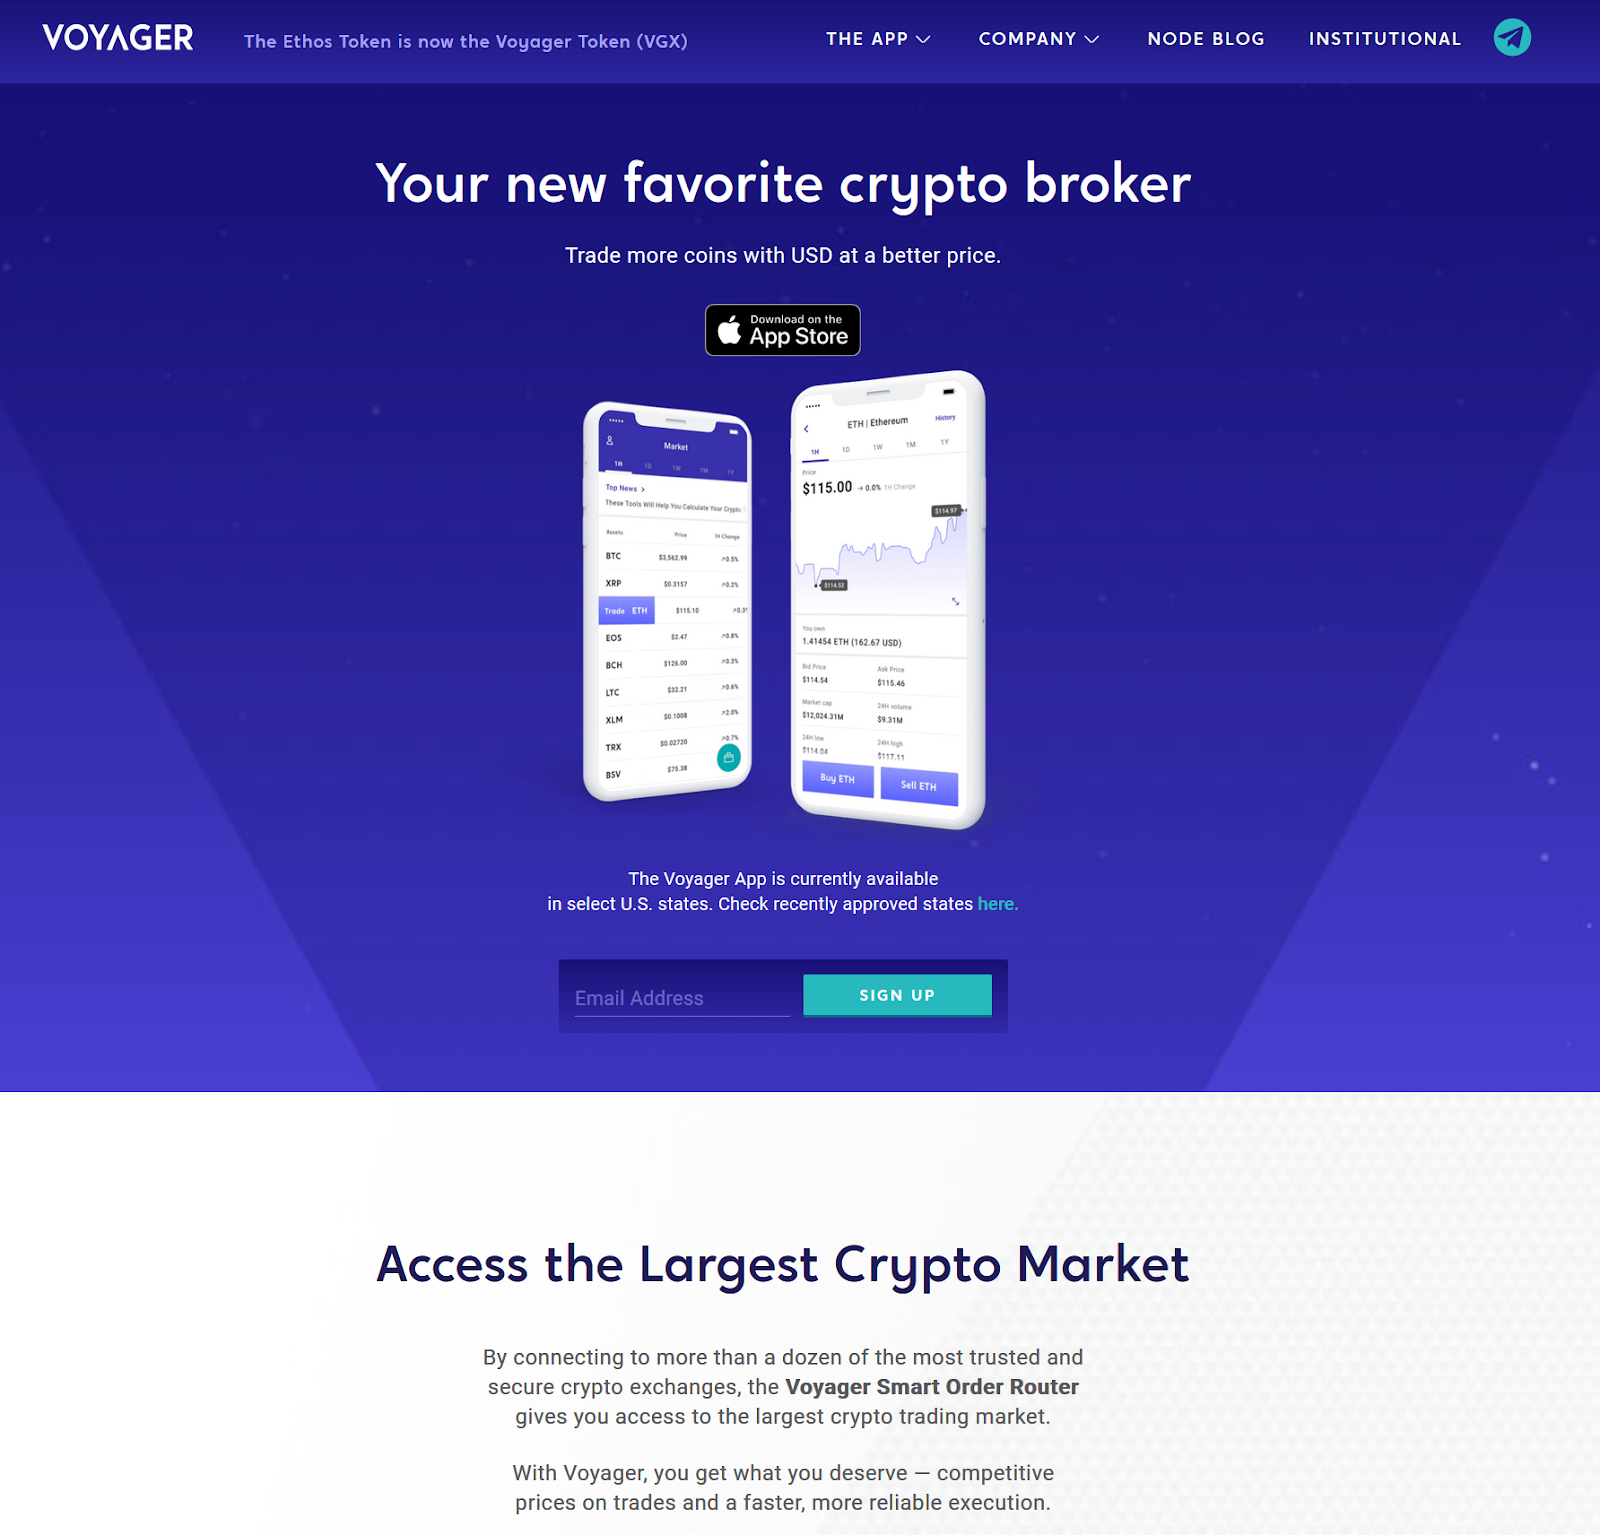 Voyager's Mobile App page from Voyager